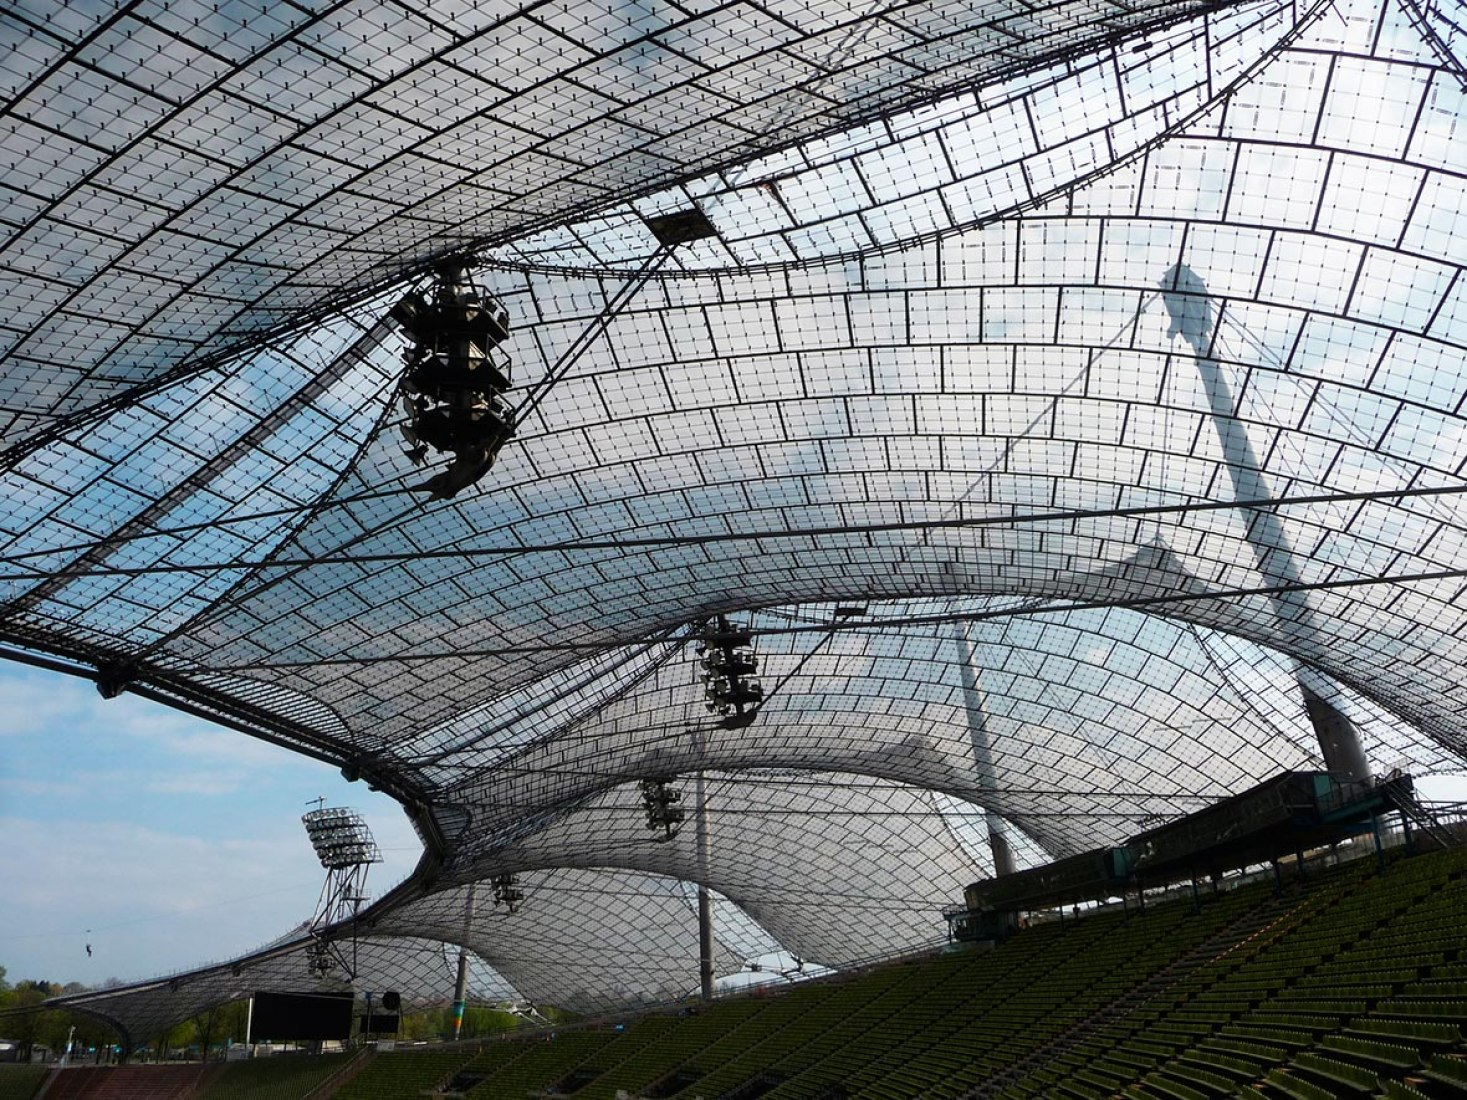 Roofing for main sports facilities in the Munich Olympic Park for the 1972 Summer Olympics, 1968–1972, Munich, Germany . Image © Atelier Frei Otto Warmbronn.